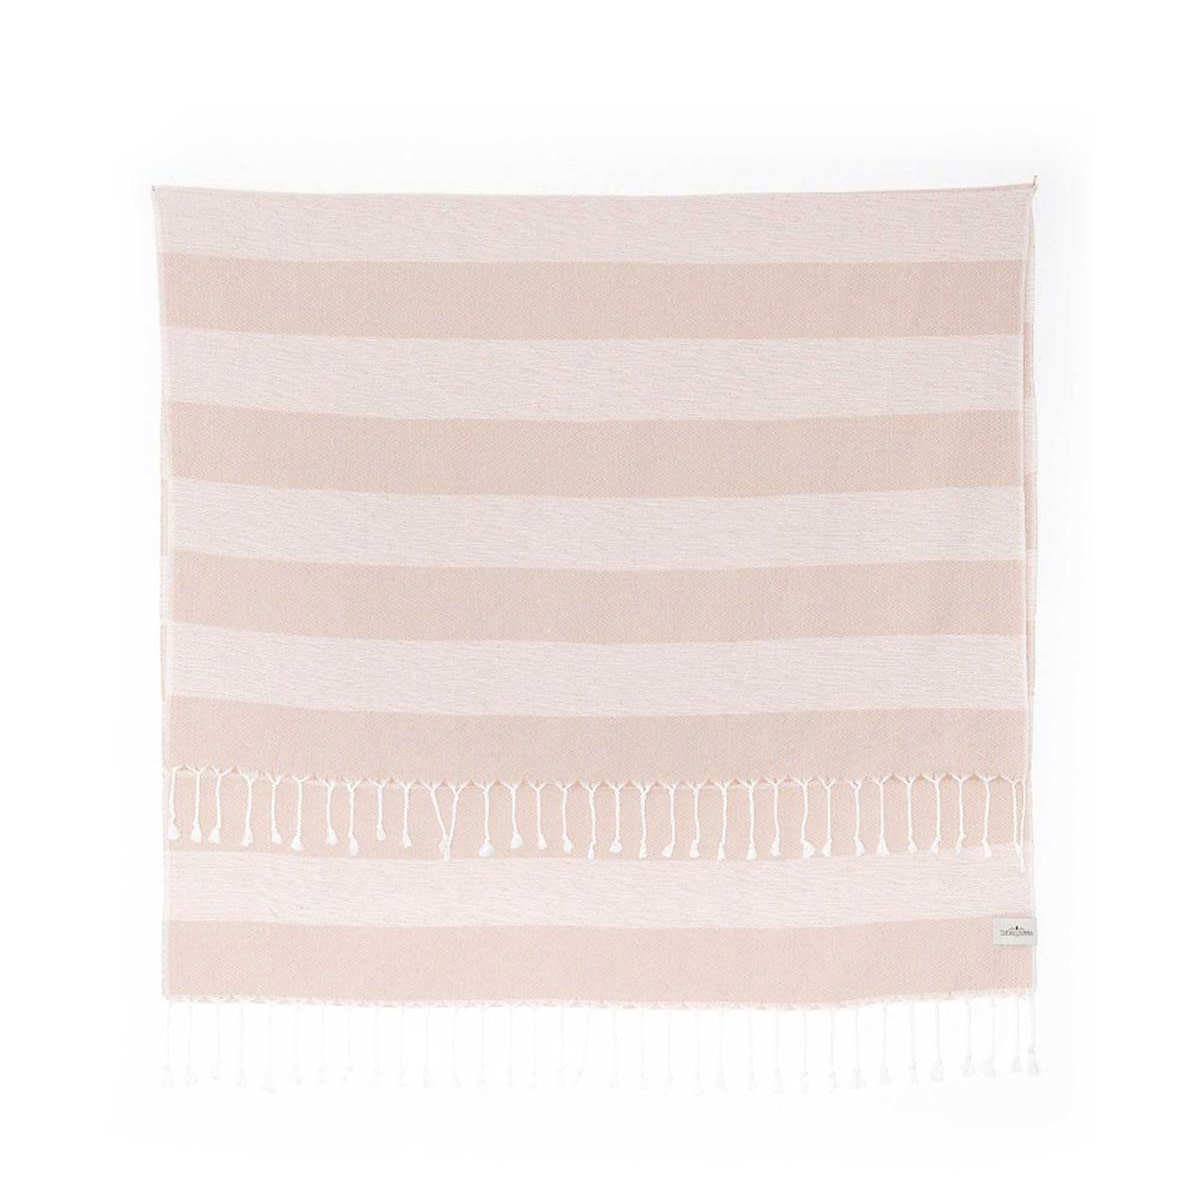 Tofino Towel Co. Tofino Towel The Breaker - Sandstone Beige